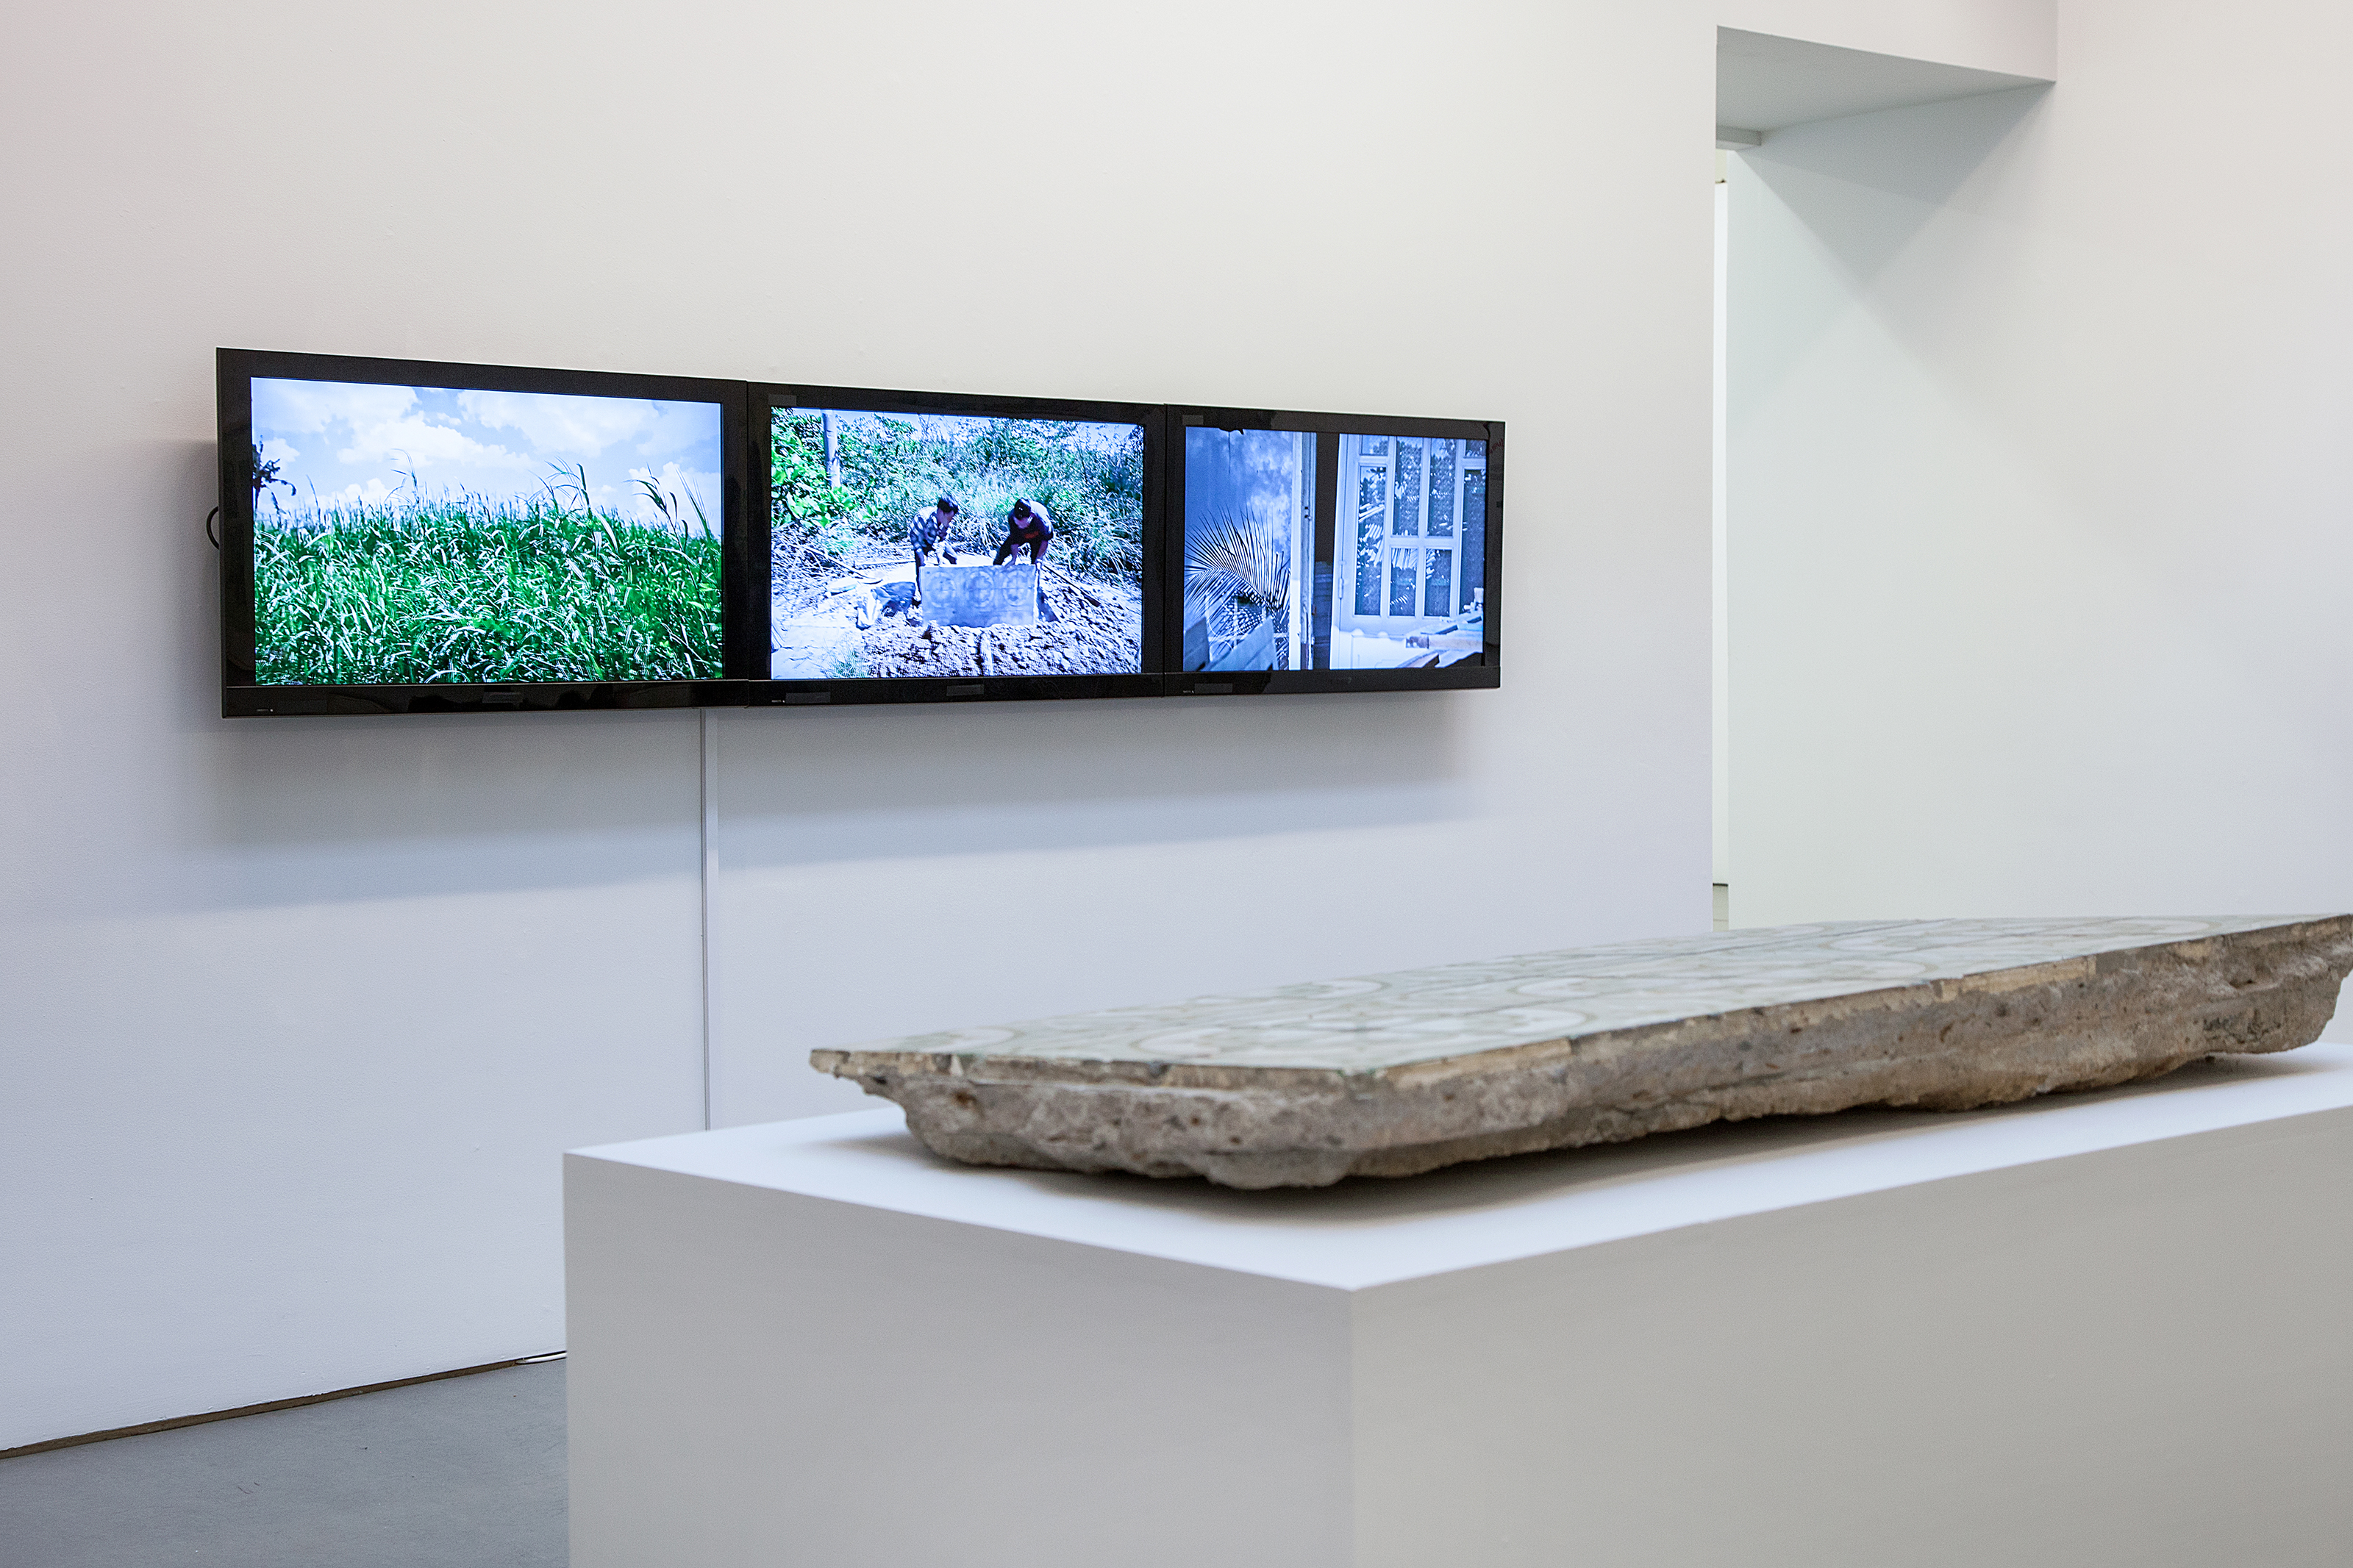 Tifanny Chung, An archeology project for future remembrance, 2011-present. Four-channel video installation, 42 min 12 sec. Exhibition view at EVA International – Ireland's Biennial 2016. Photo: Miriam O' Connor. Courtesy the artist, Galerie Quynh and EVA International.